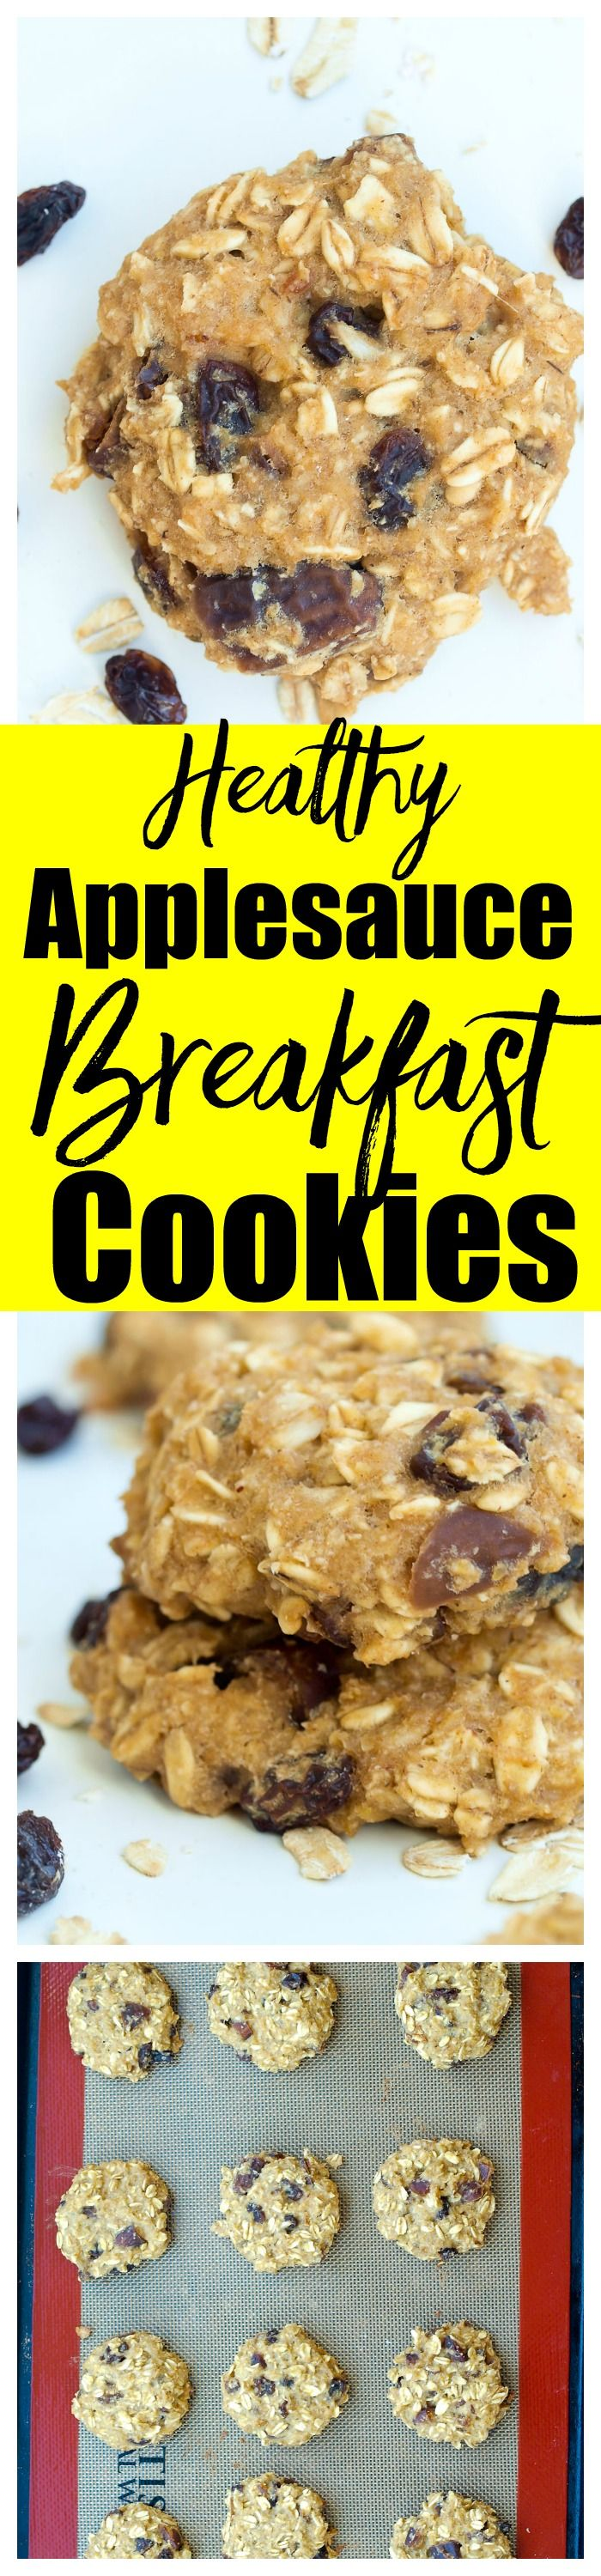 These Healthy Applesauce Breakfast Cookies Are A Simple One Bowl Recipe And Are Gluten Free And Vega Breakfast Cookies Healthy Breakfast Cookies Vegan Cookies